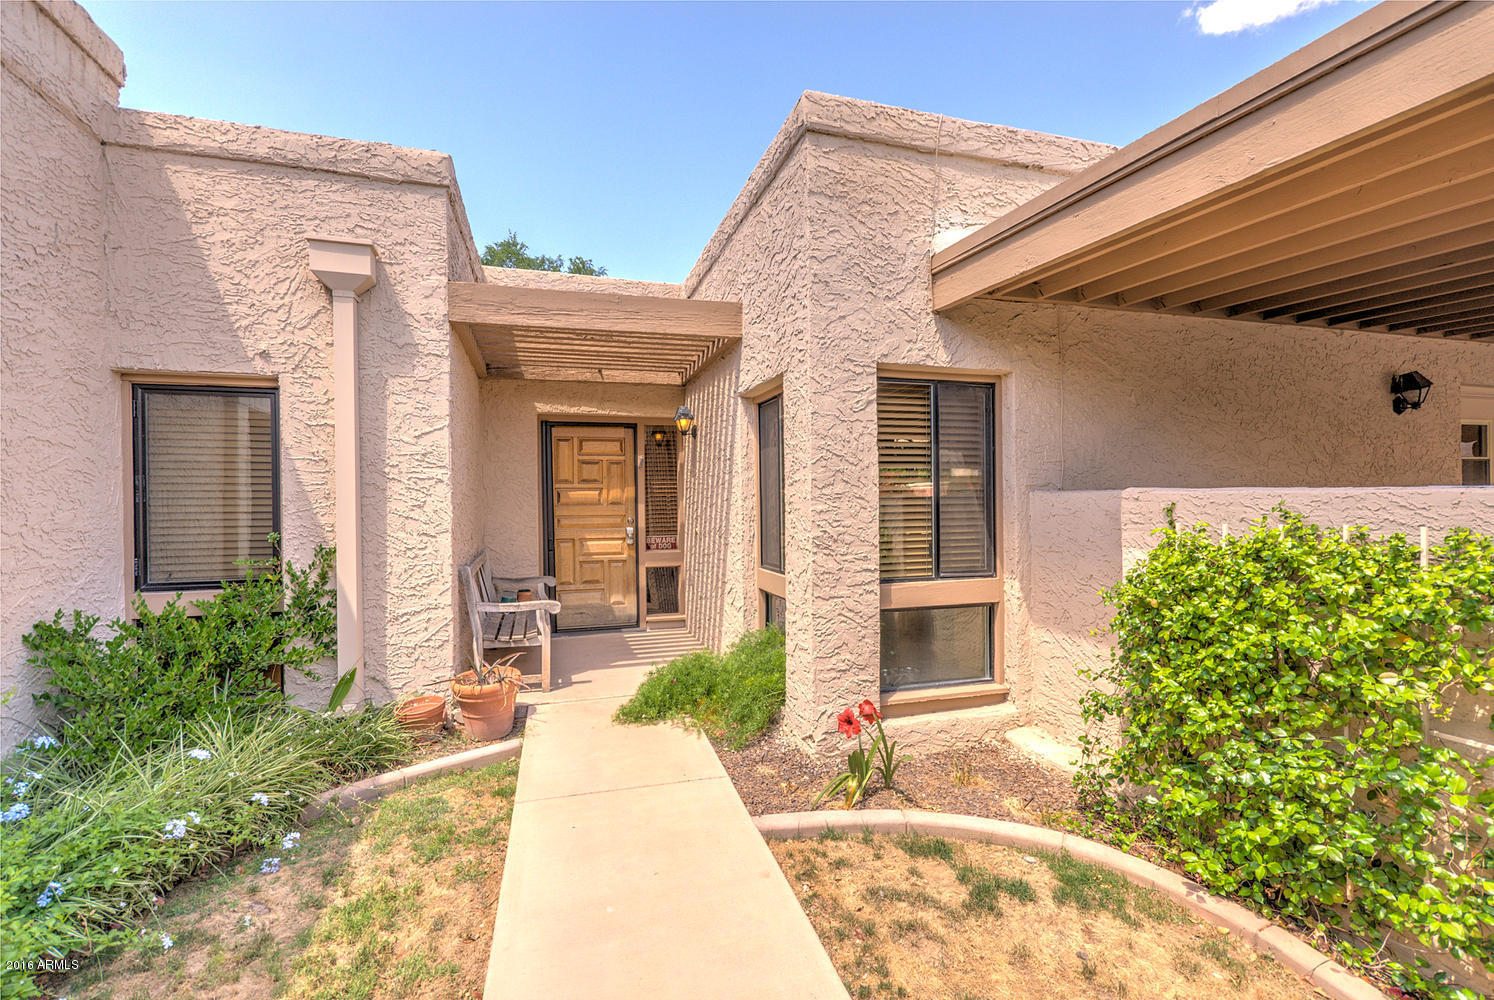 Recently Sold 4525 N 66th Street Scottsdale 85251